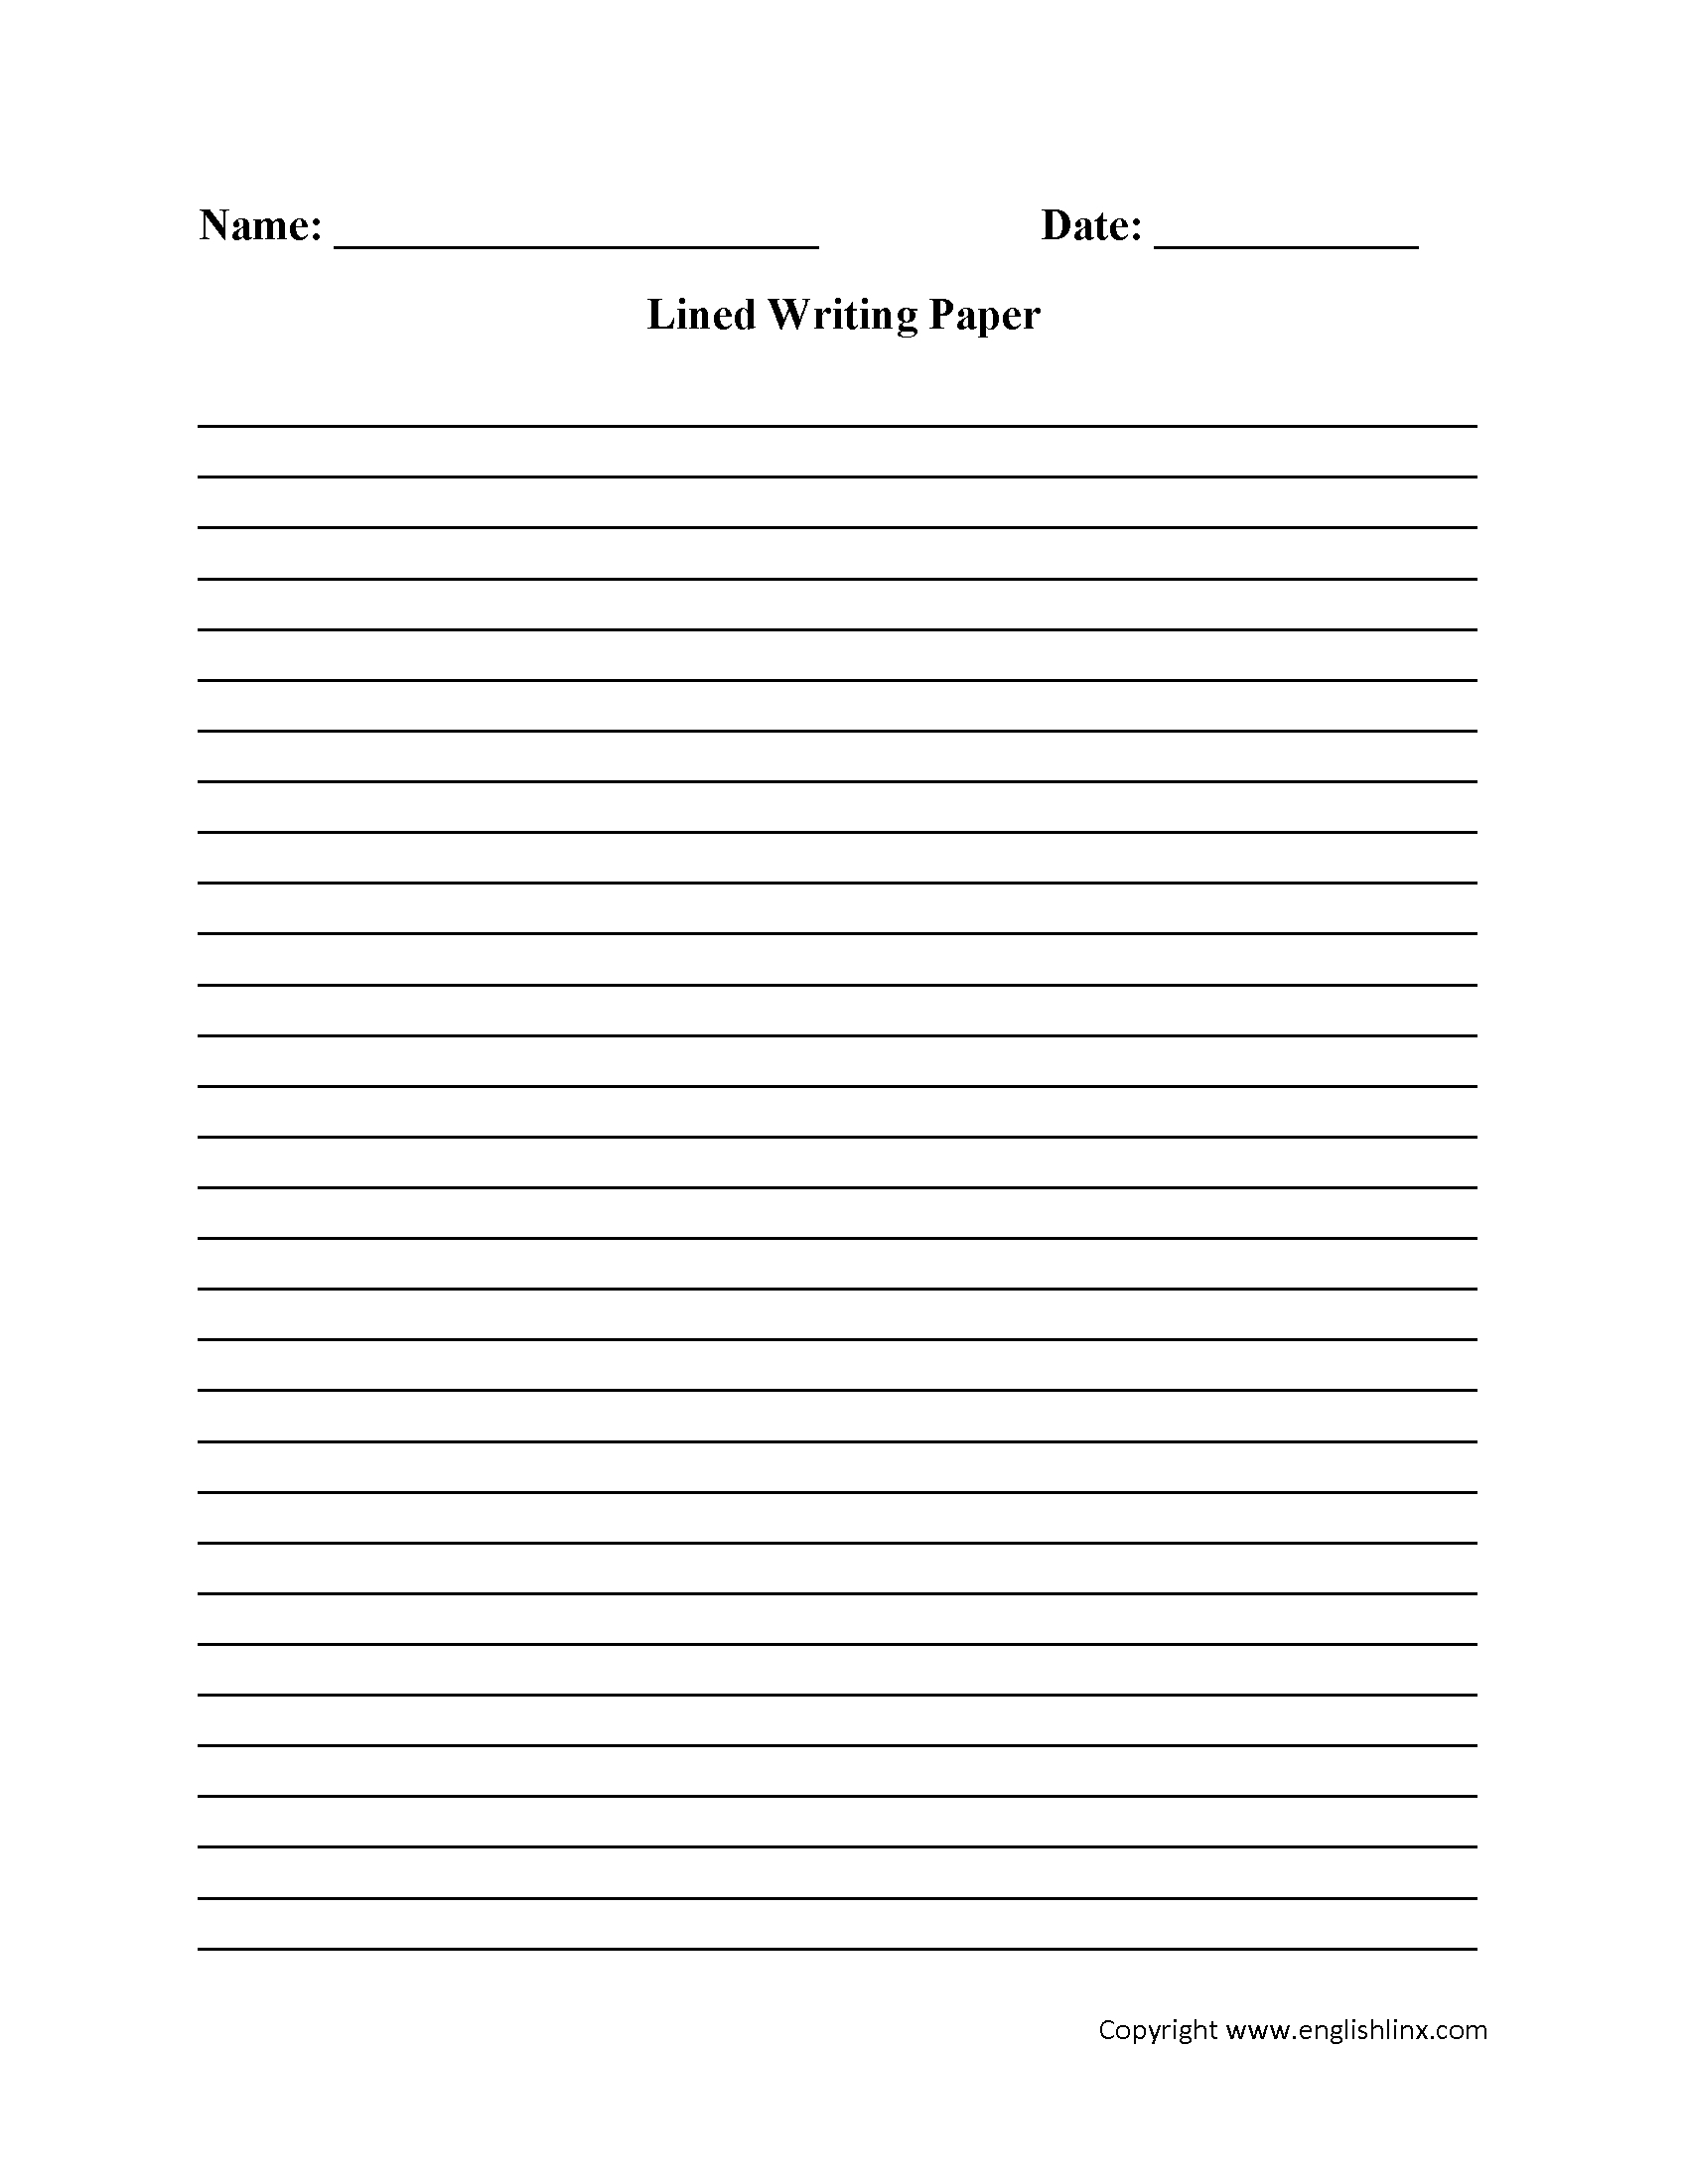 Writing Worksheets | Lined Writing Paper Worksheets - Free Printable | Printable Writing Worksheets